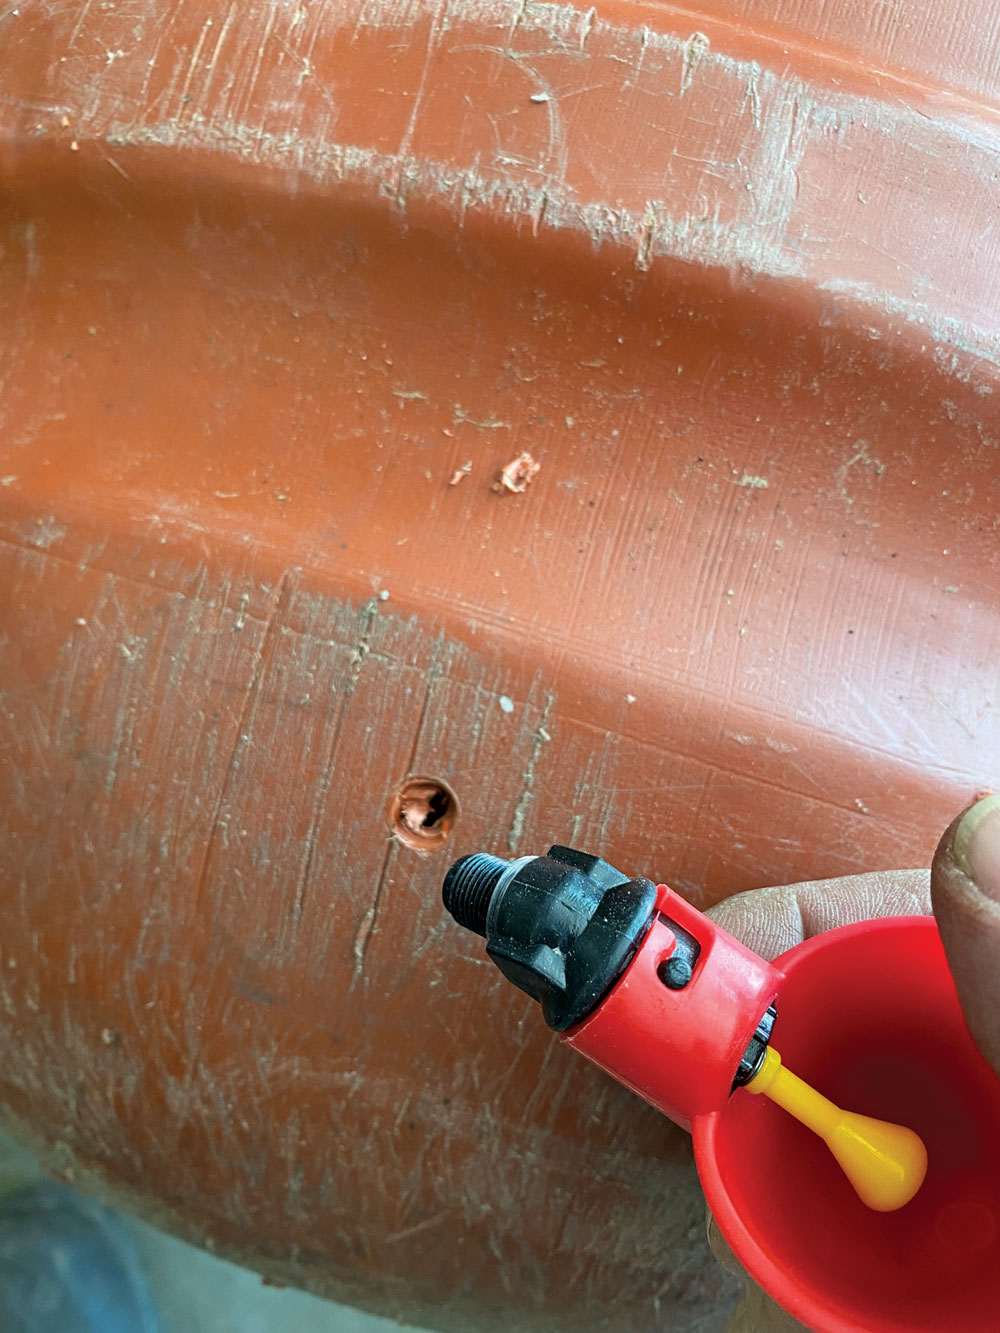 Carefully screw the watering cup assembly into the drilled hole.